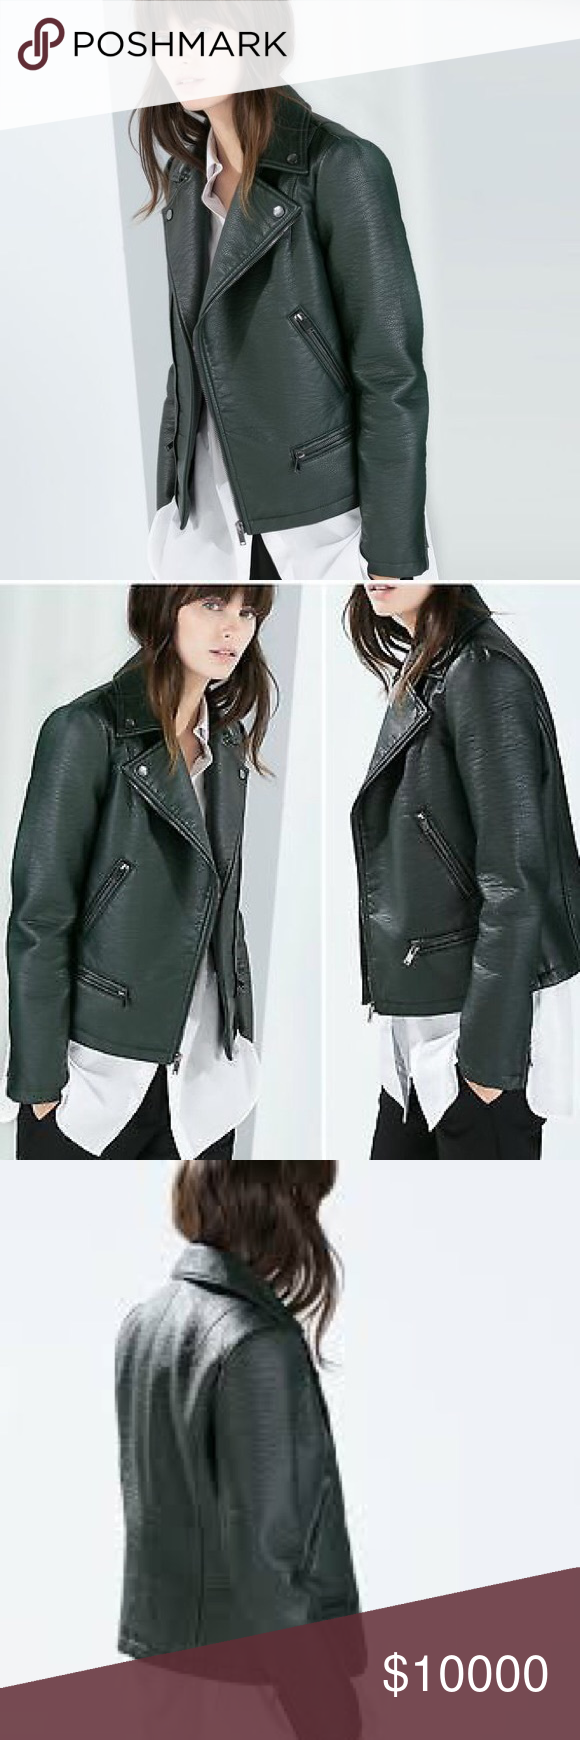 Iso zara faux green leather jacket Green leather jackets